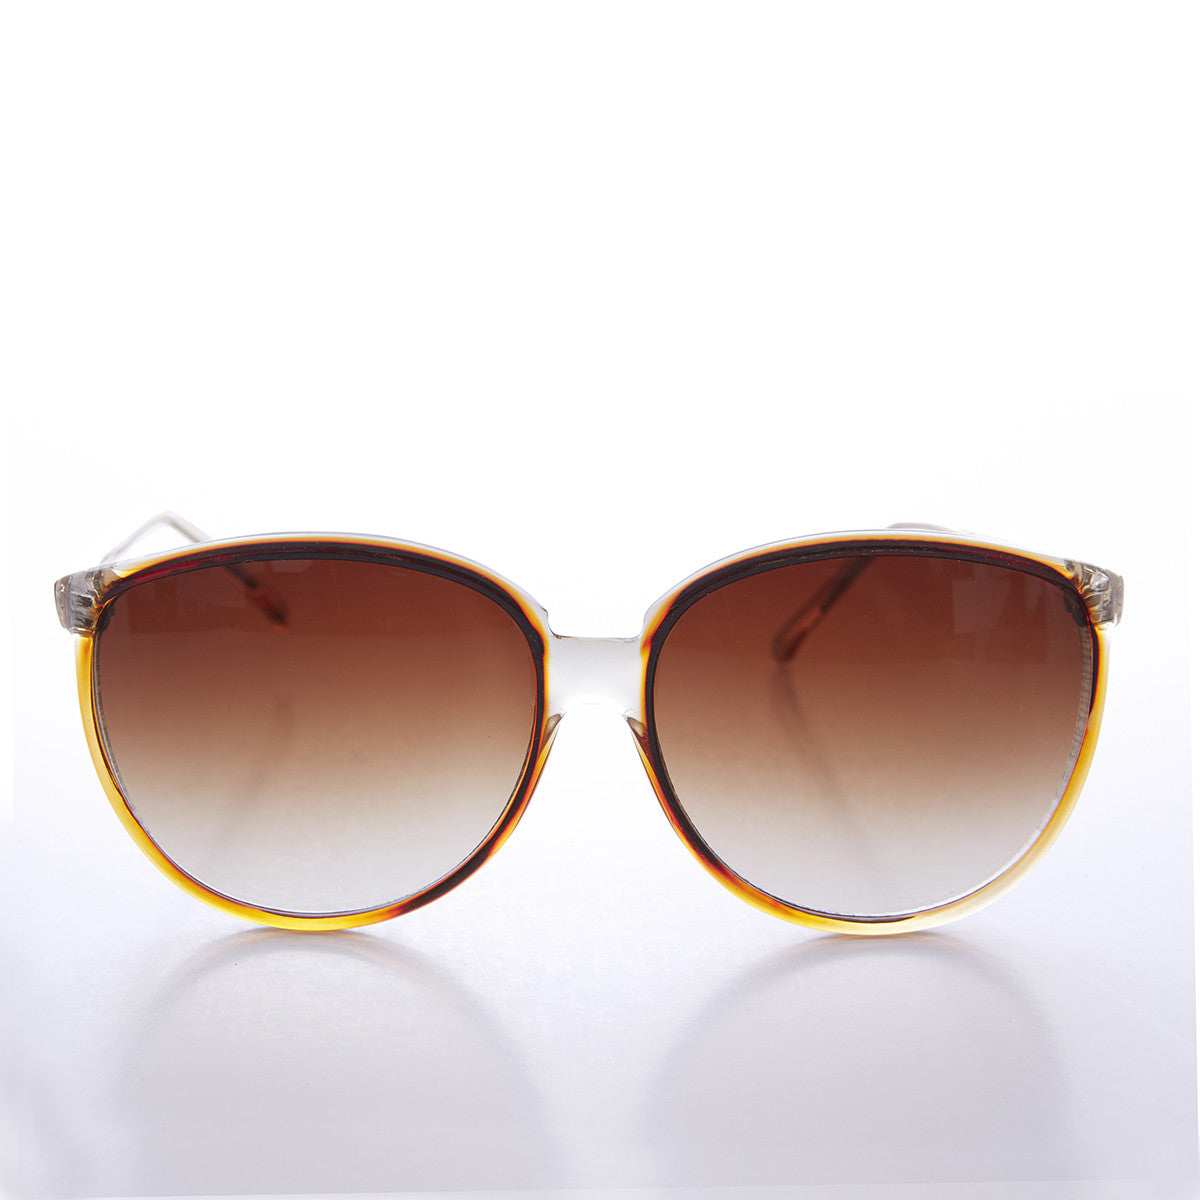 Round Large Women's Clear Frame 80s Vintage Sunglass